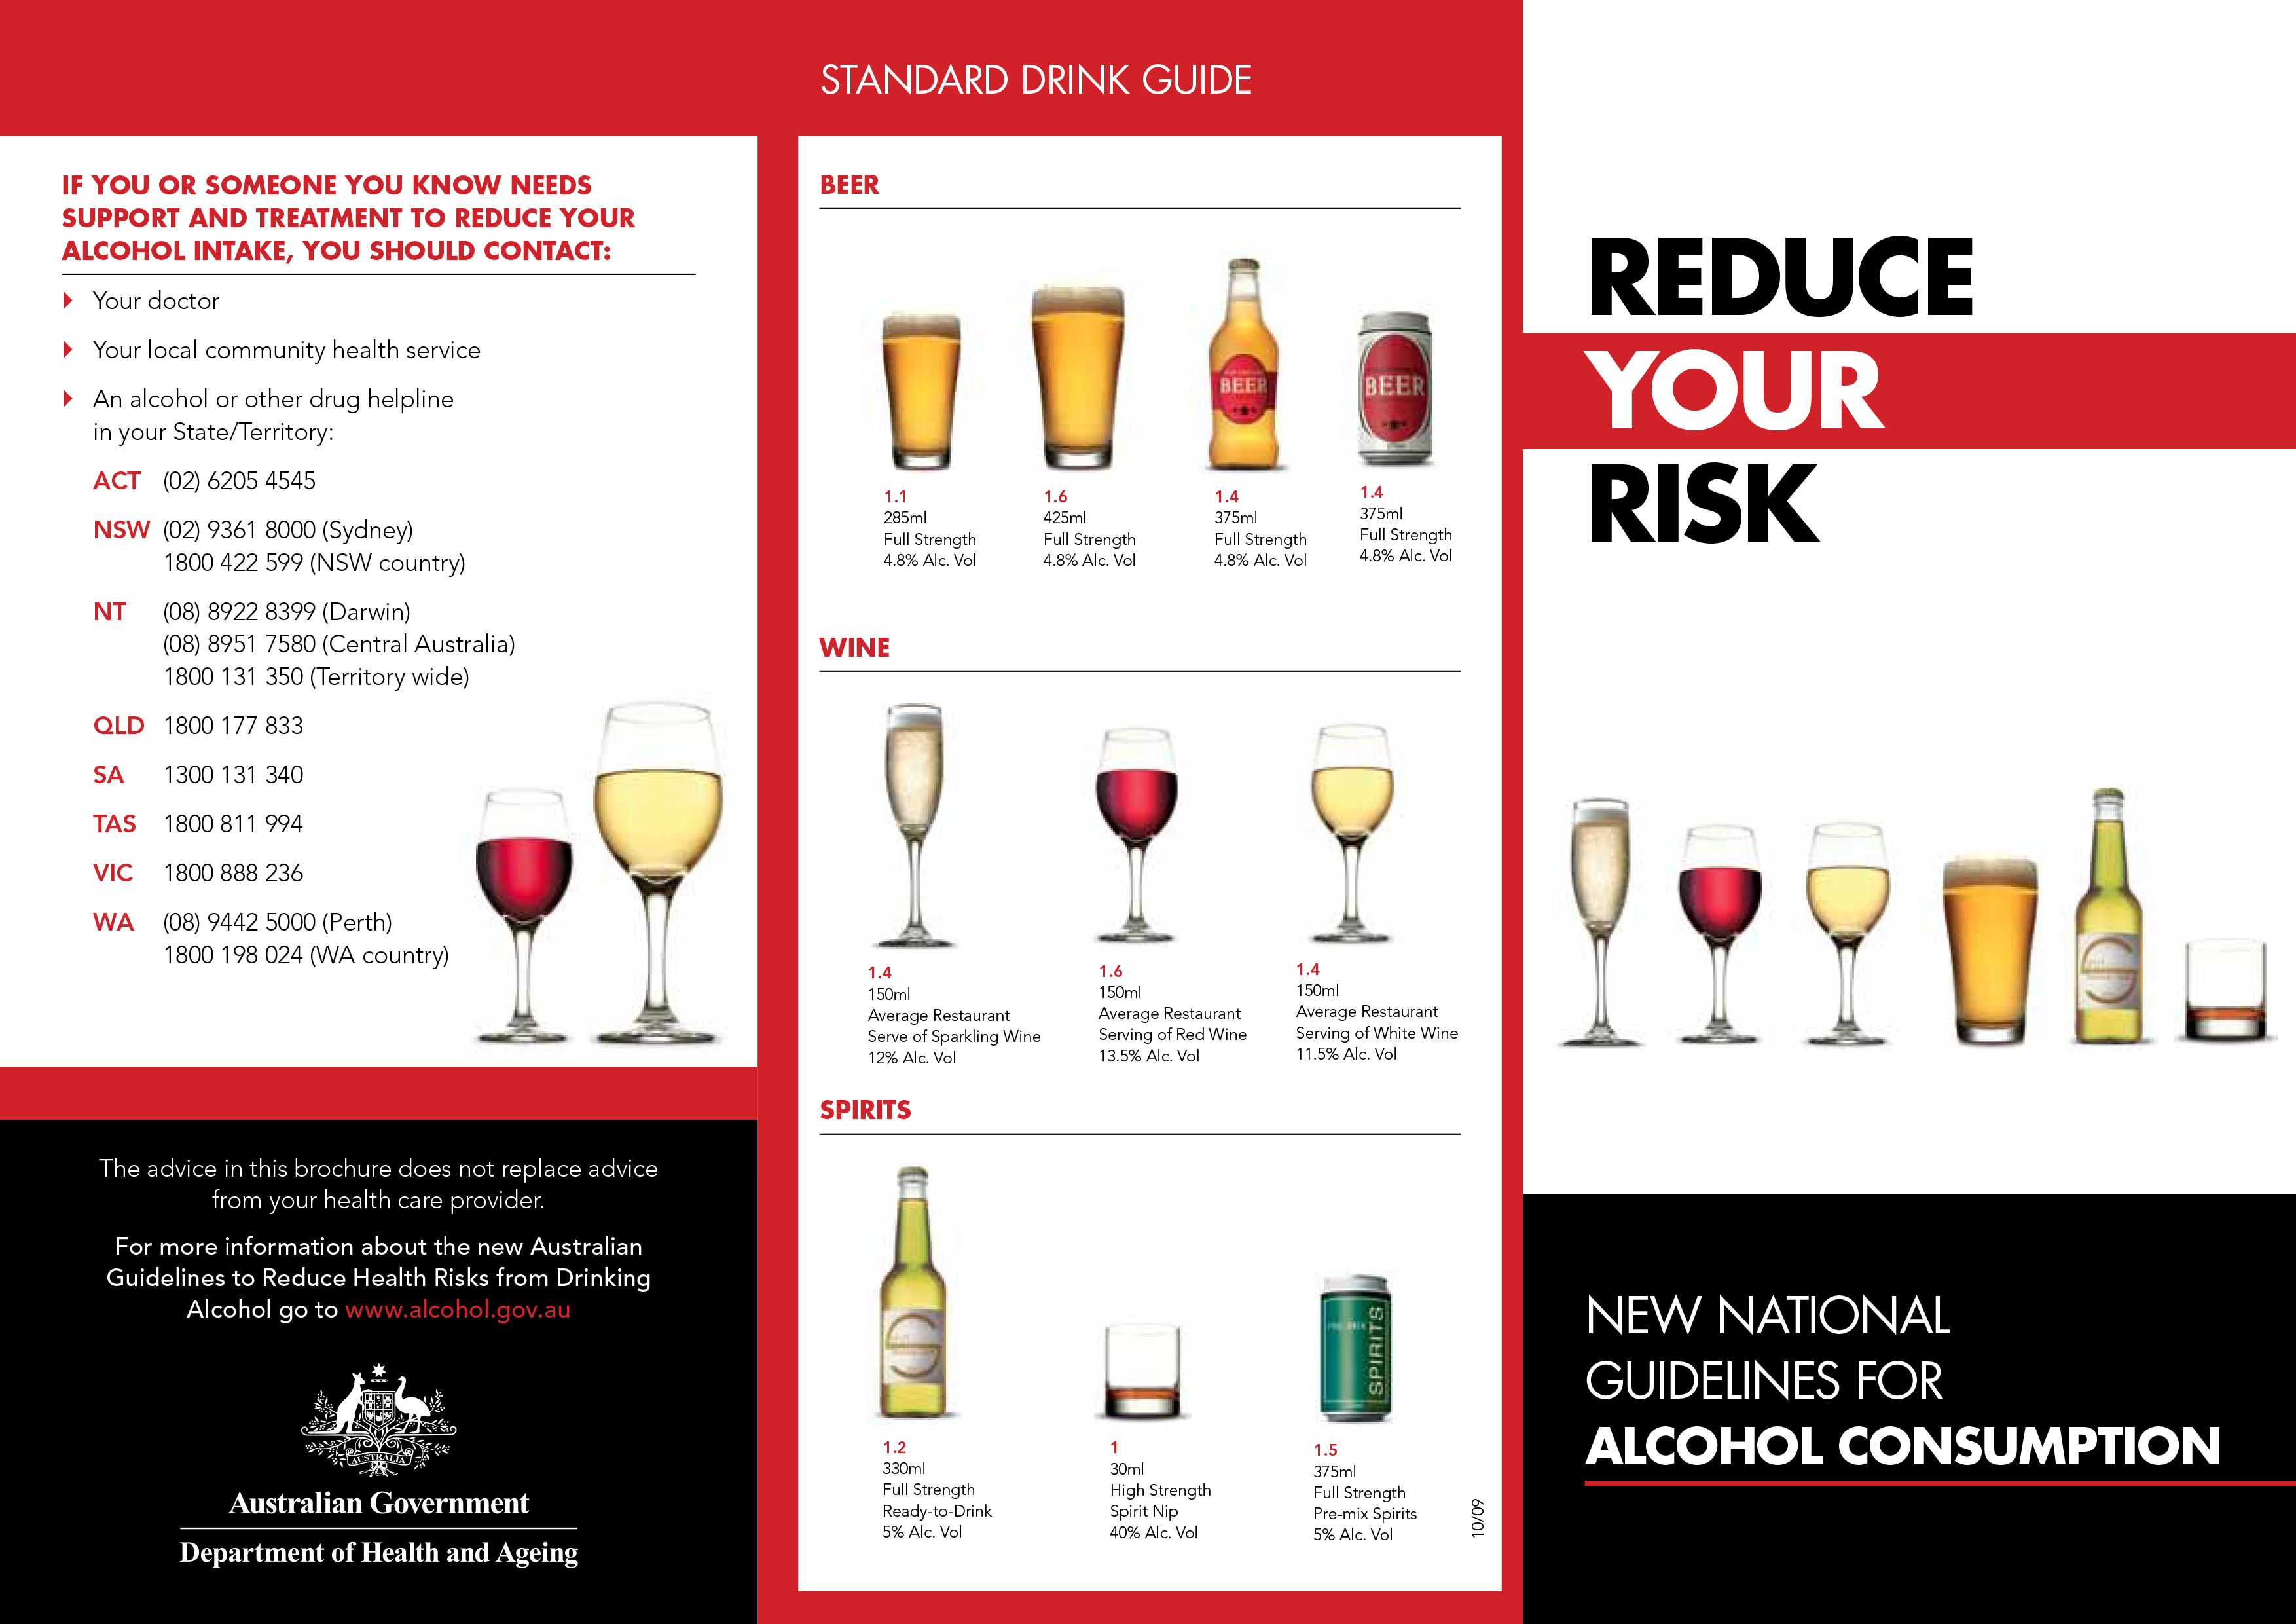 Alcohol: Reduce Your Risk Brochure - DOHA (2012)